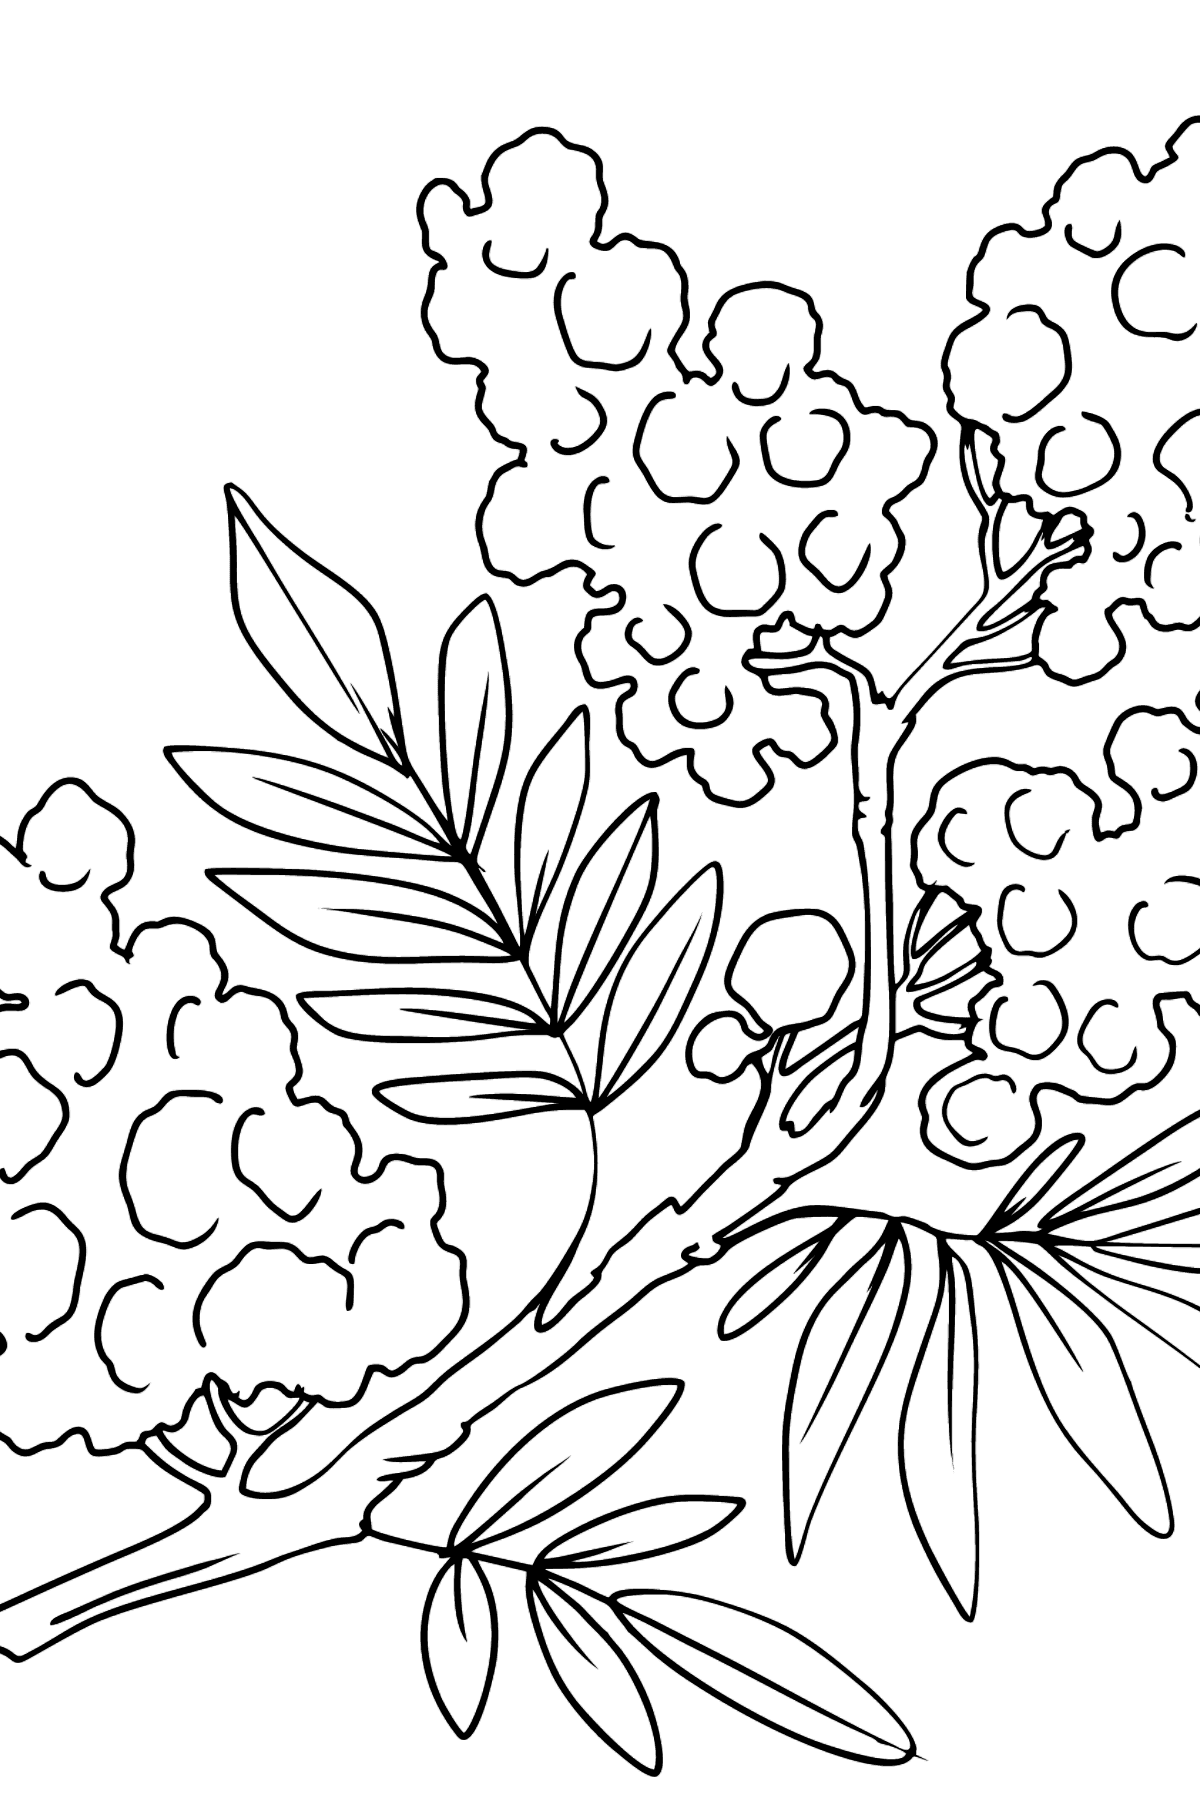 Flower Coloring Page - Mimosa - Coloring Pages for Kids